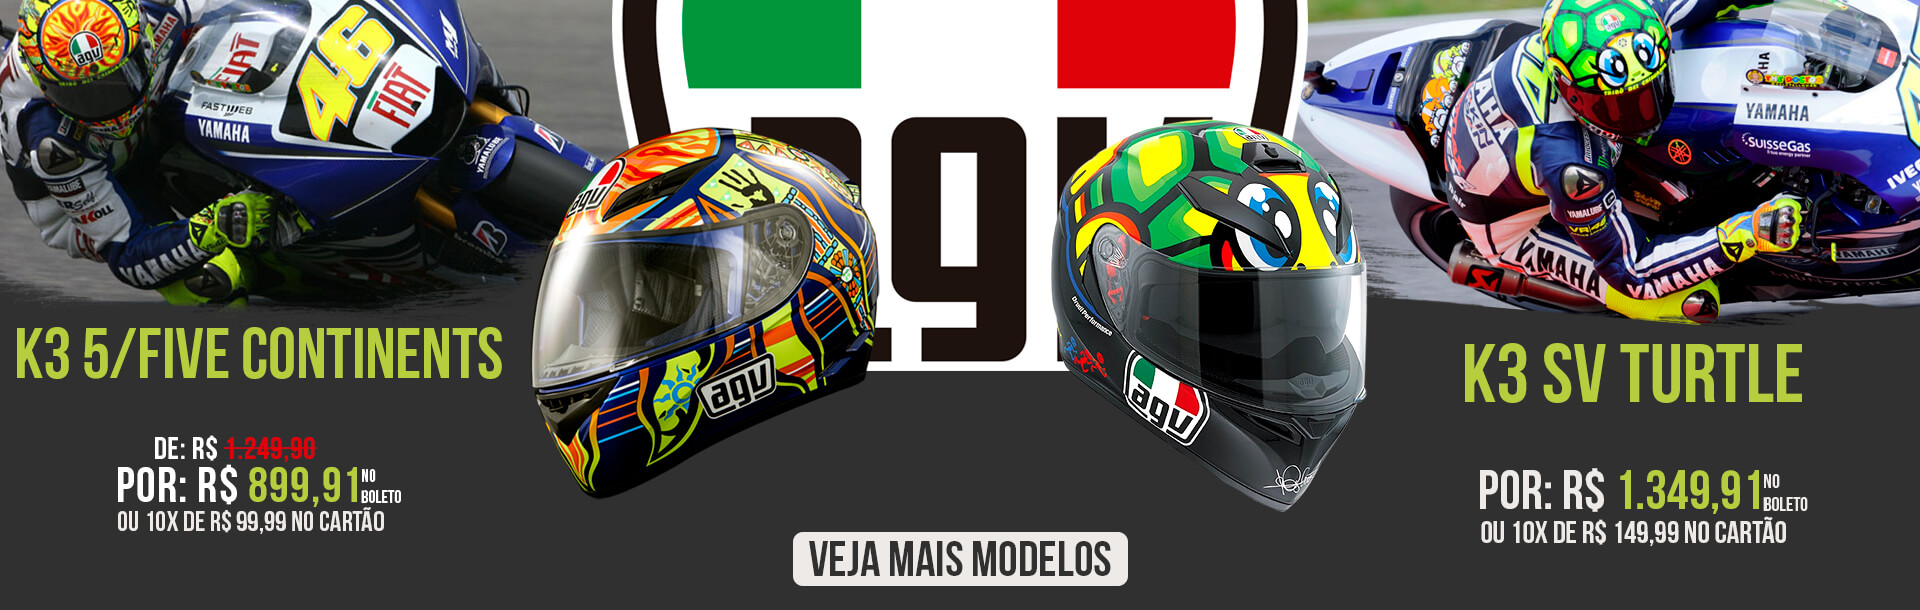 agv k3 turtle + 5/continents